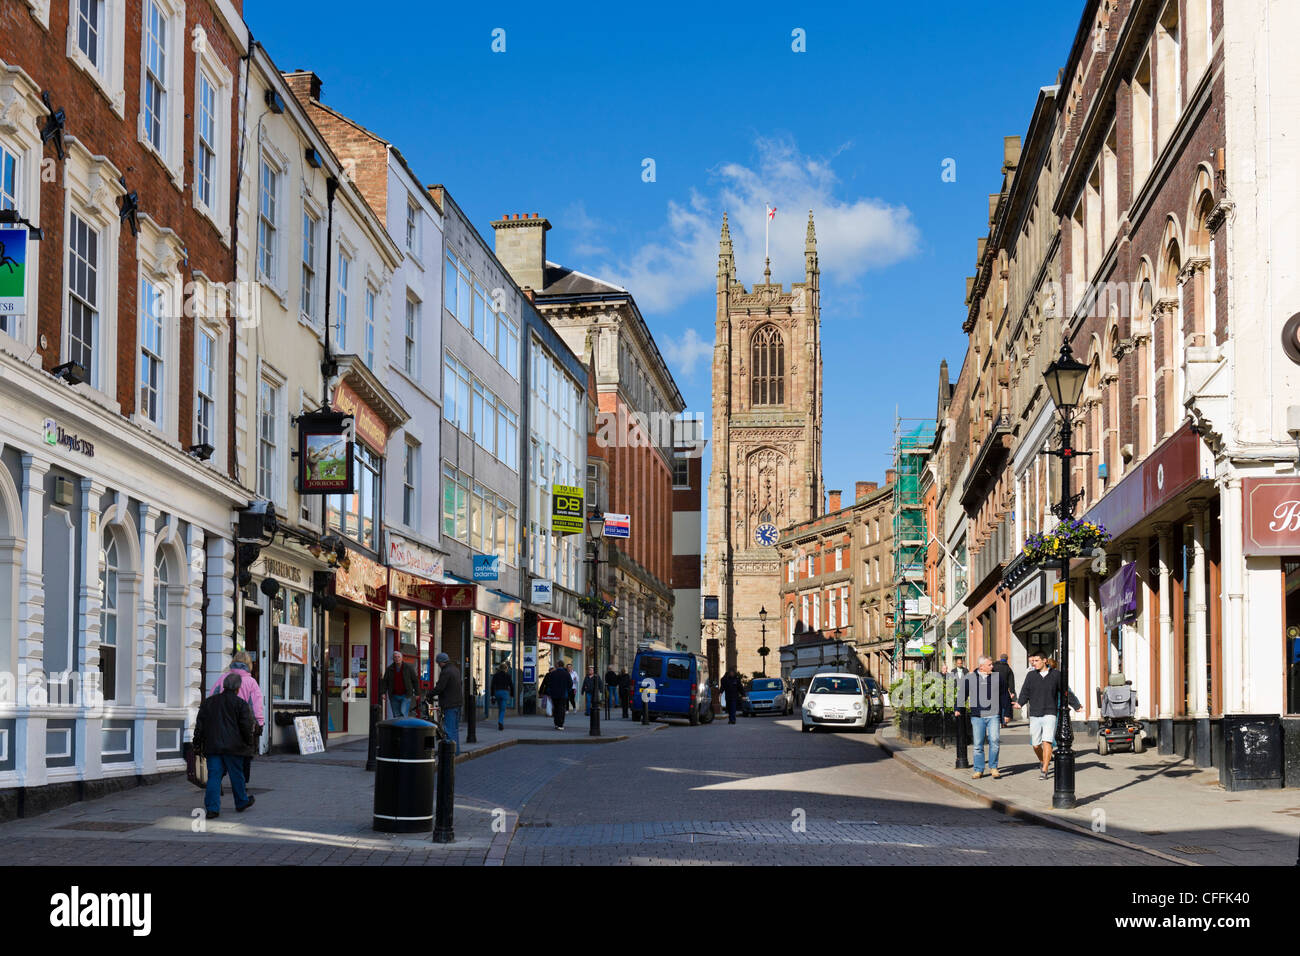 View down Iron Gate in the city centre looking towards the cathedral, Derby, Derbyshire, East Midlands, England, - Stock Image